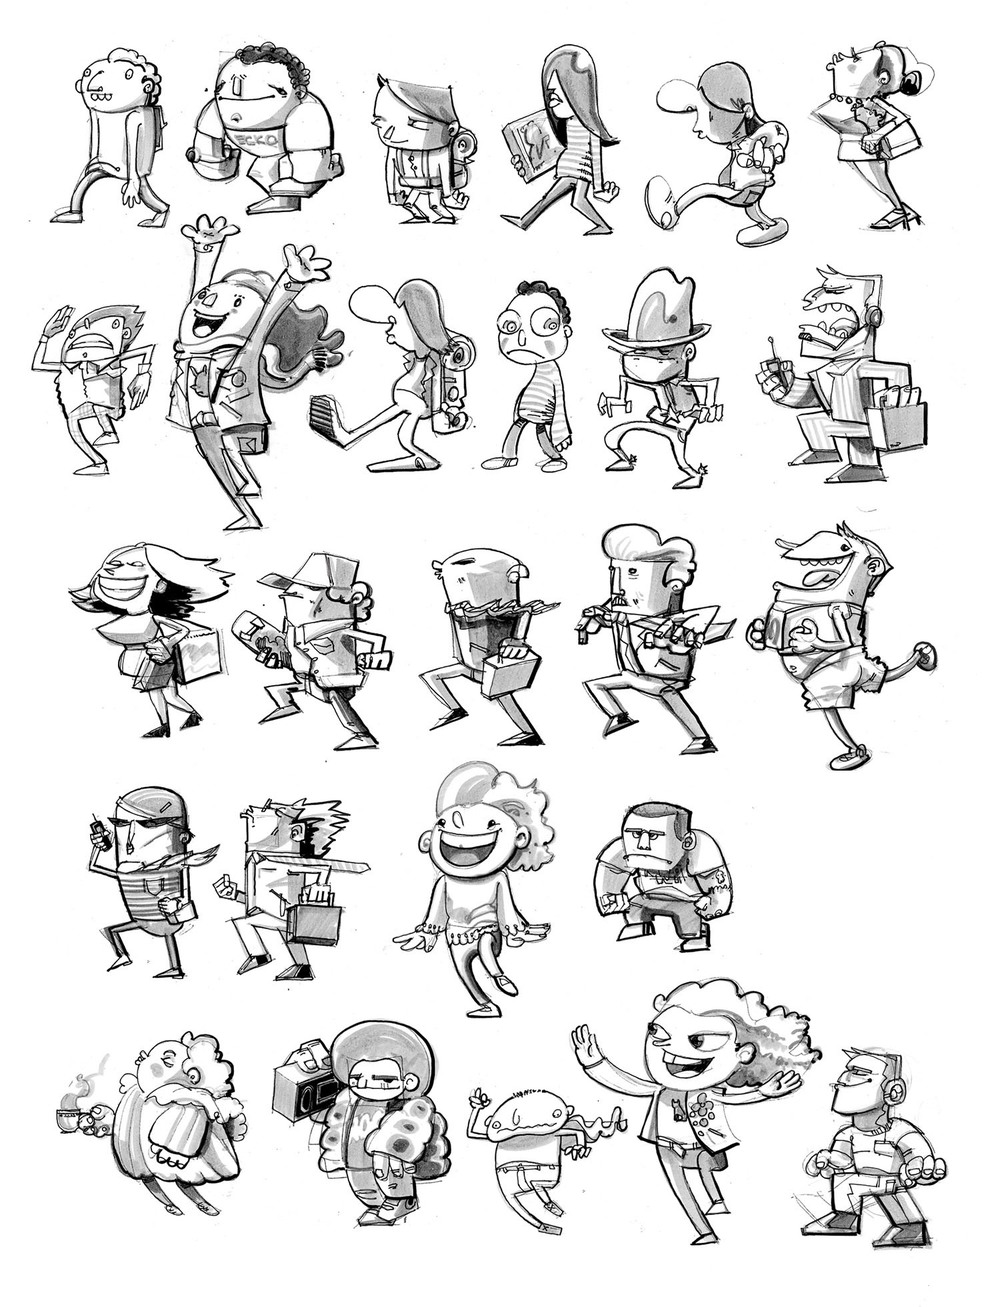 Character sketches for the Transportation Exhibit.